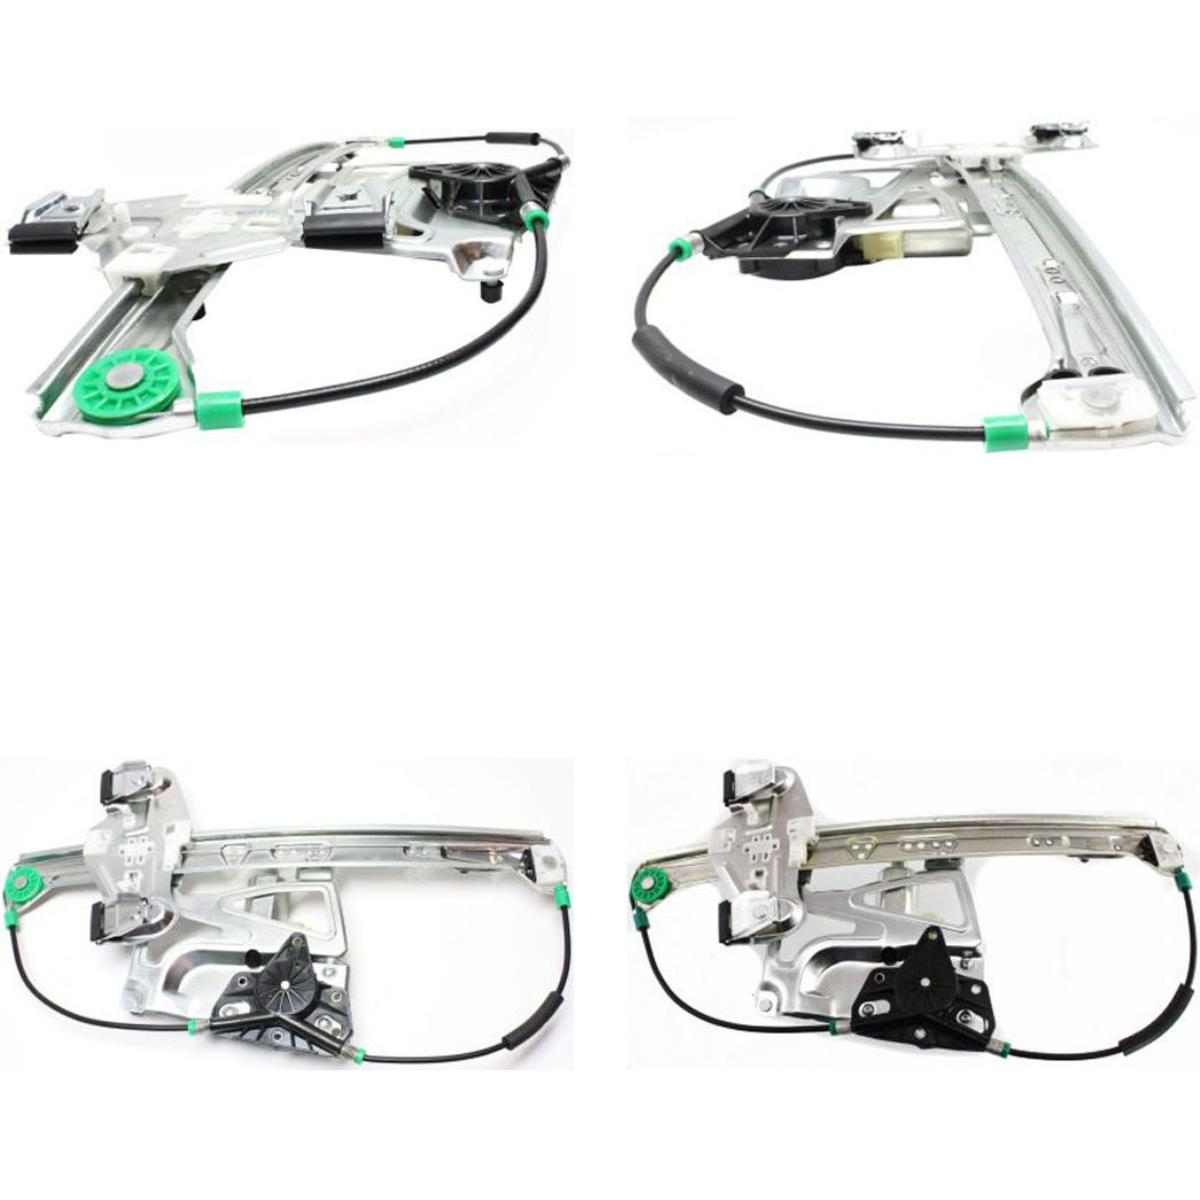 Gm Window Regulator For 00 05 Cadillac Deville